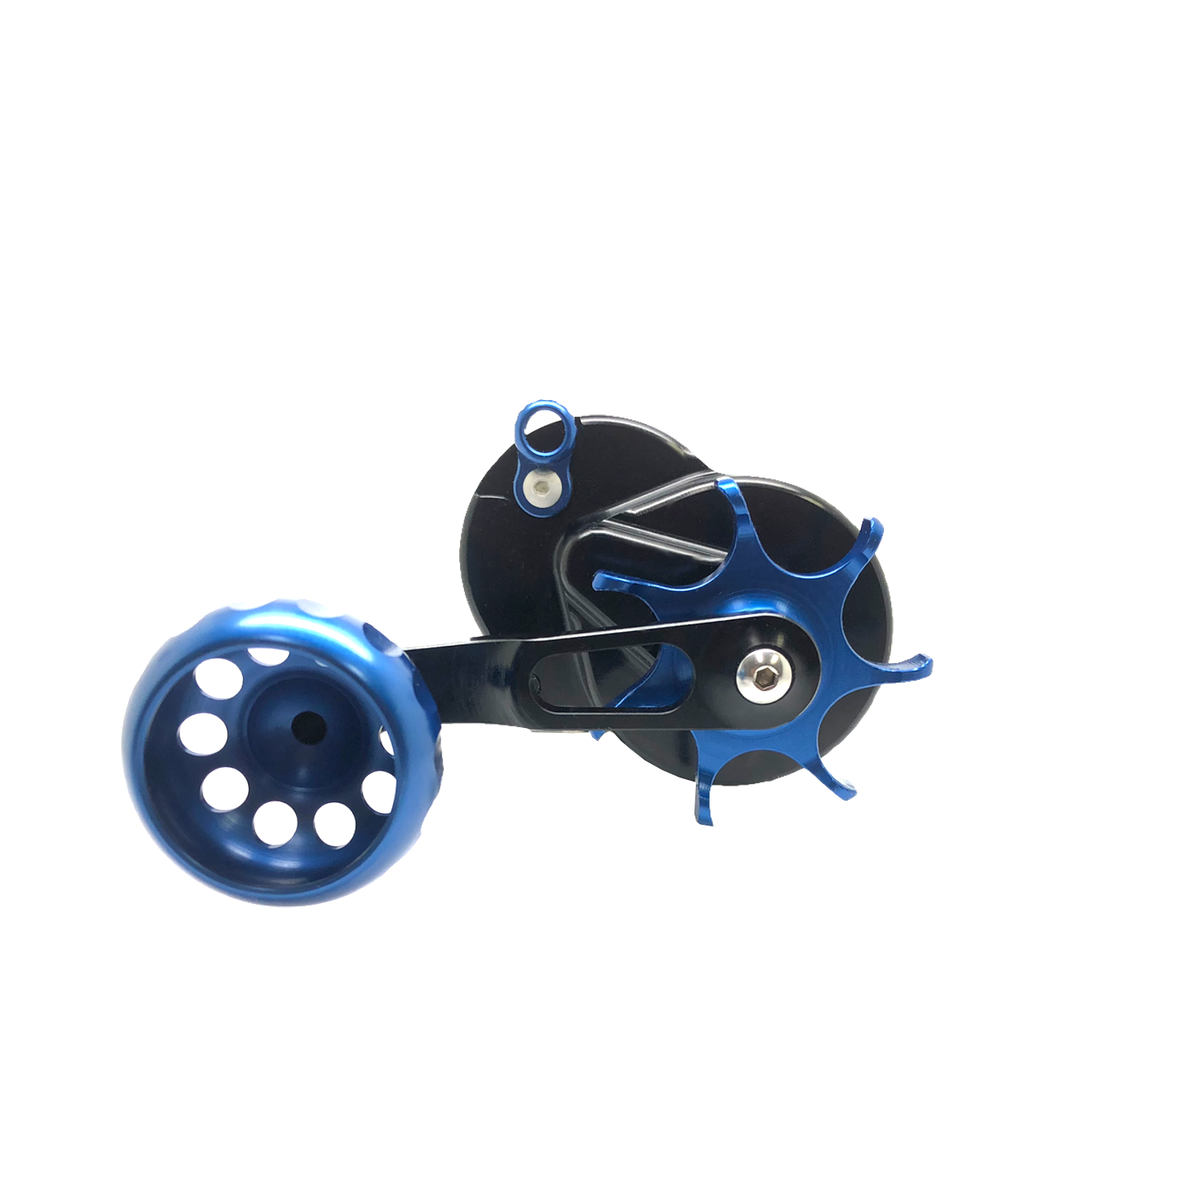 SEiGLER SM THE SURF REEL built to outcast anyone Conventional lever drag fishing reel in Silver accents and Gunmetal anodized finish, American made made in Virginia Lifetime warranty